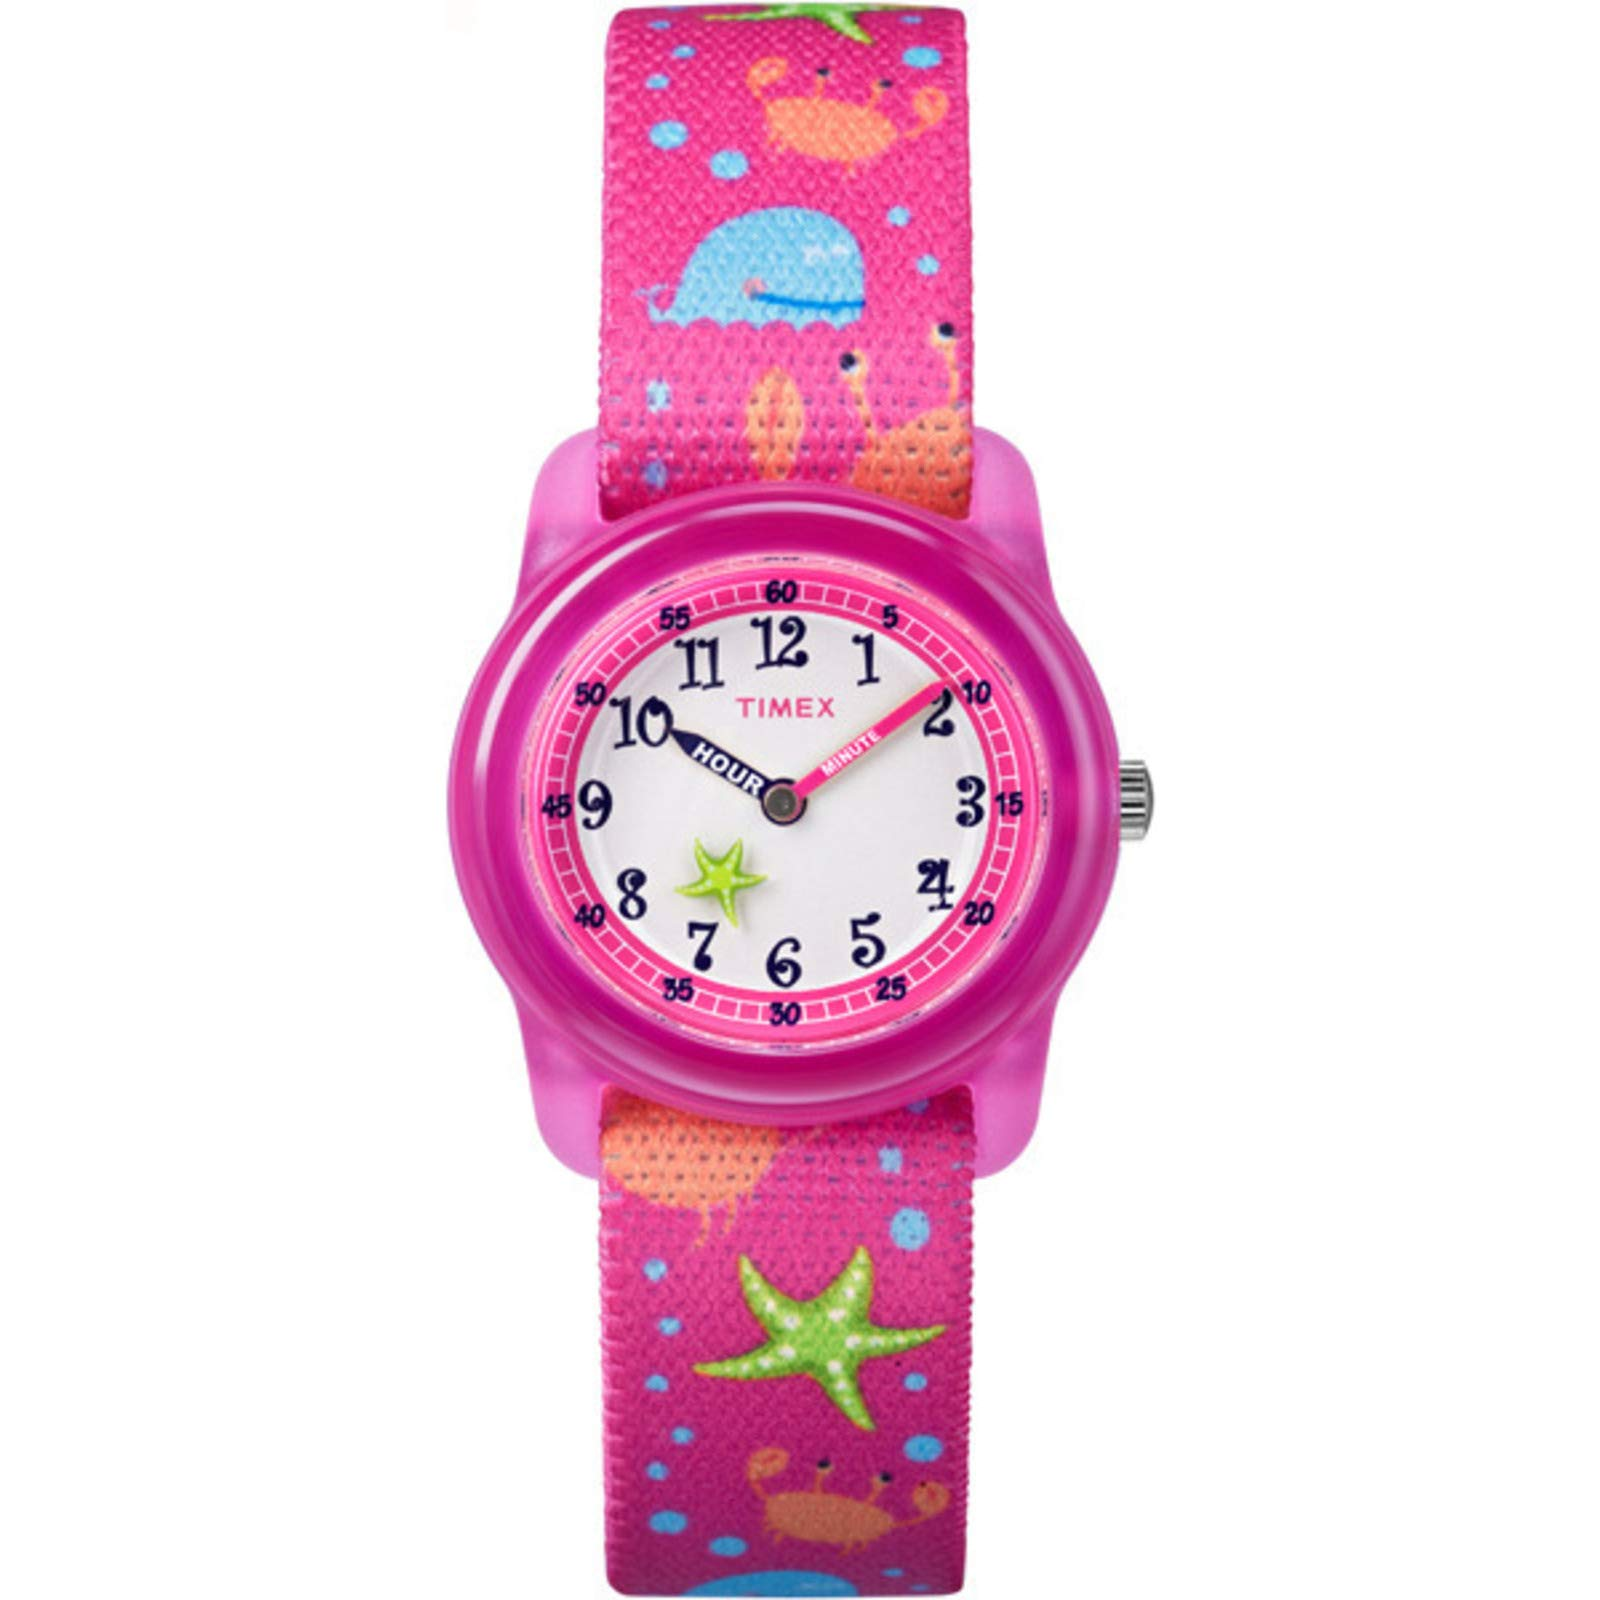 Timex Youth Kids Analog 28mm Elastic Fabric Strap |Pink| Watch TW7C13600 by Timex